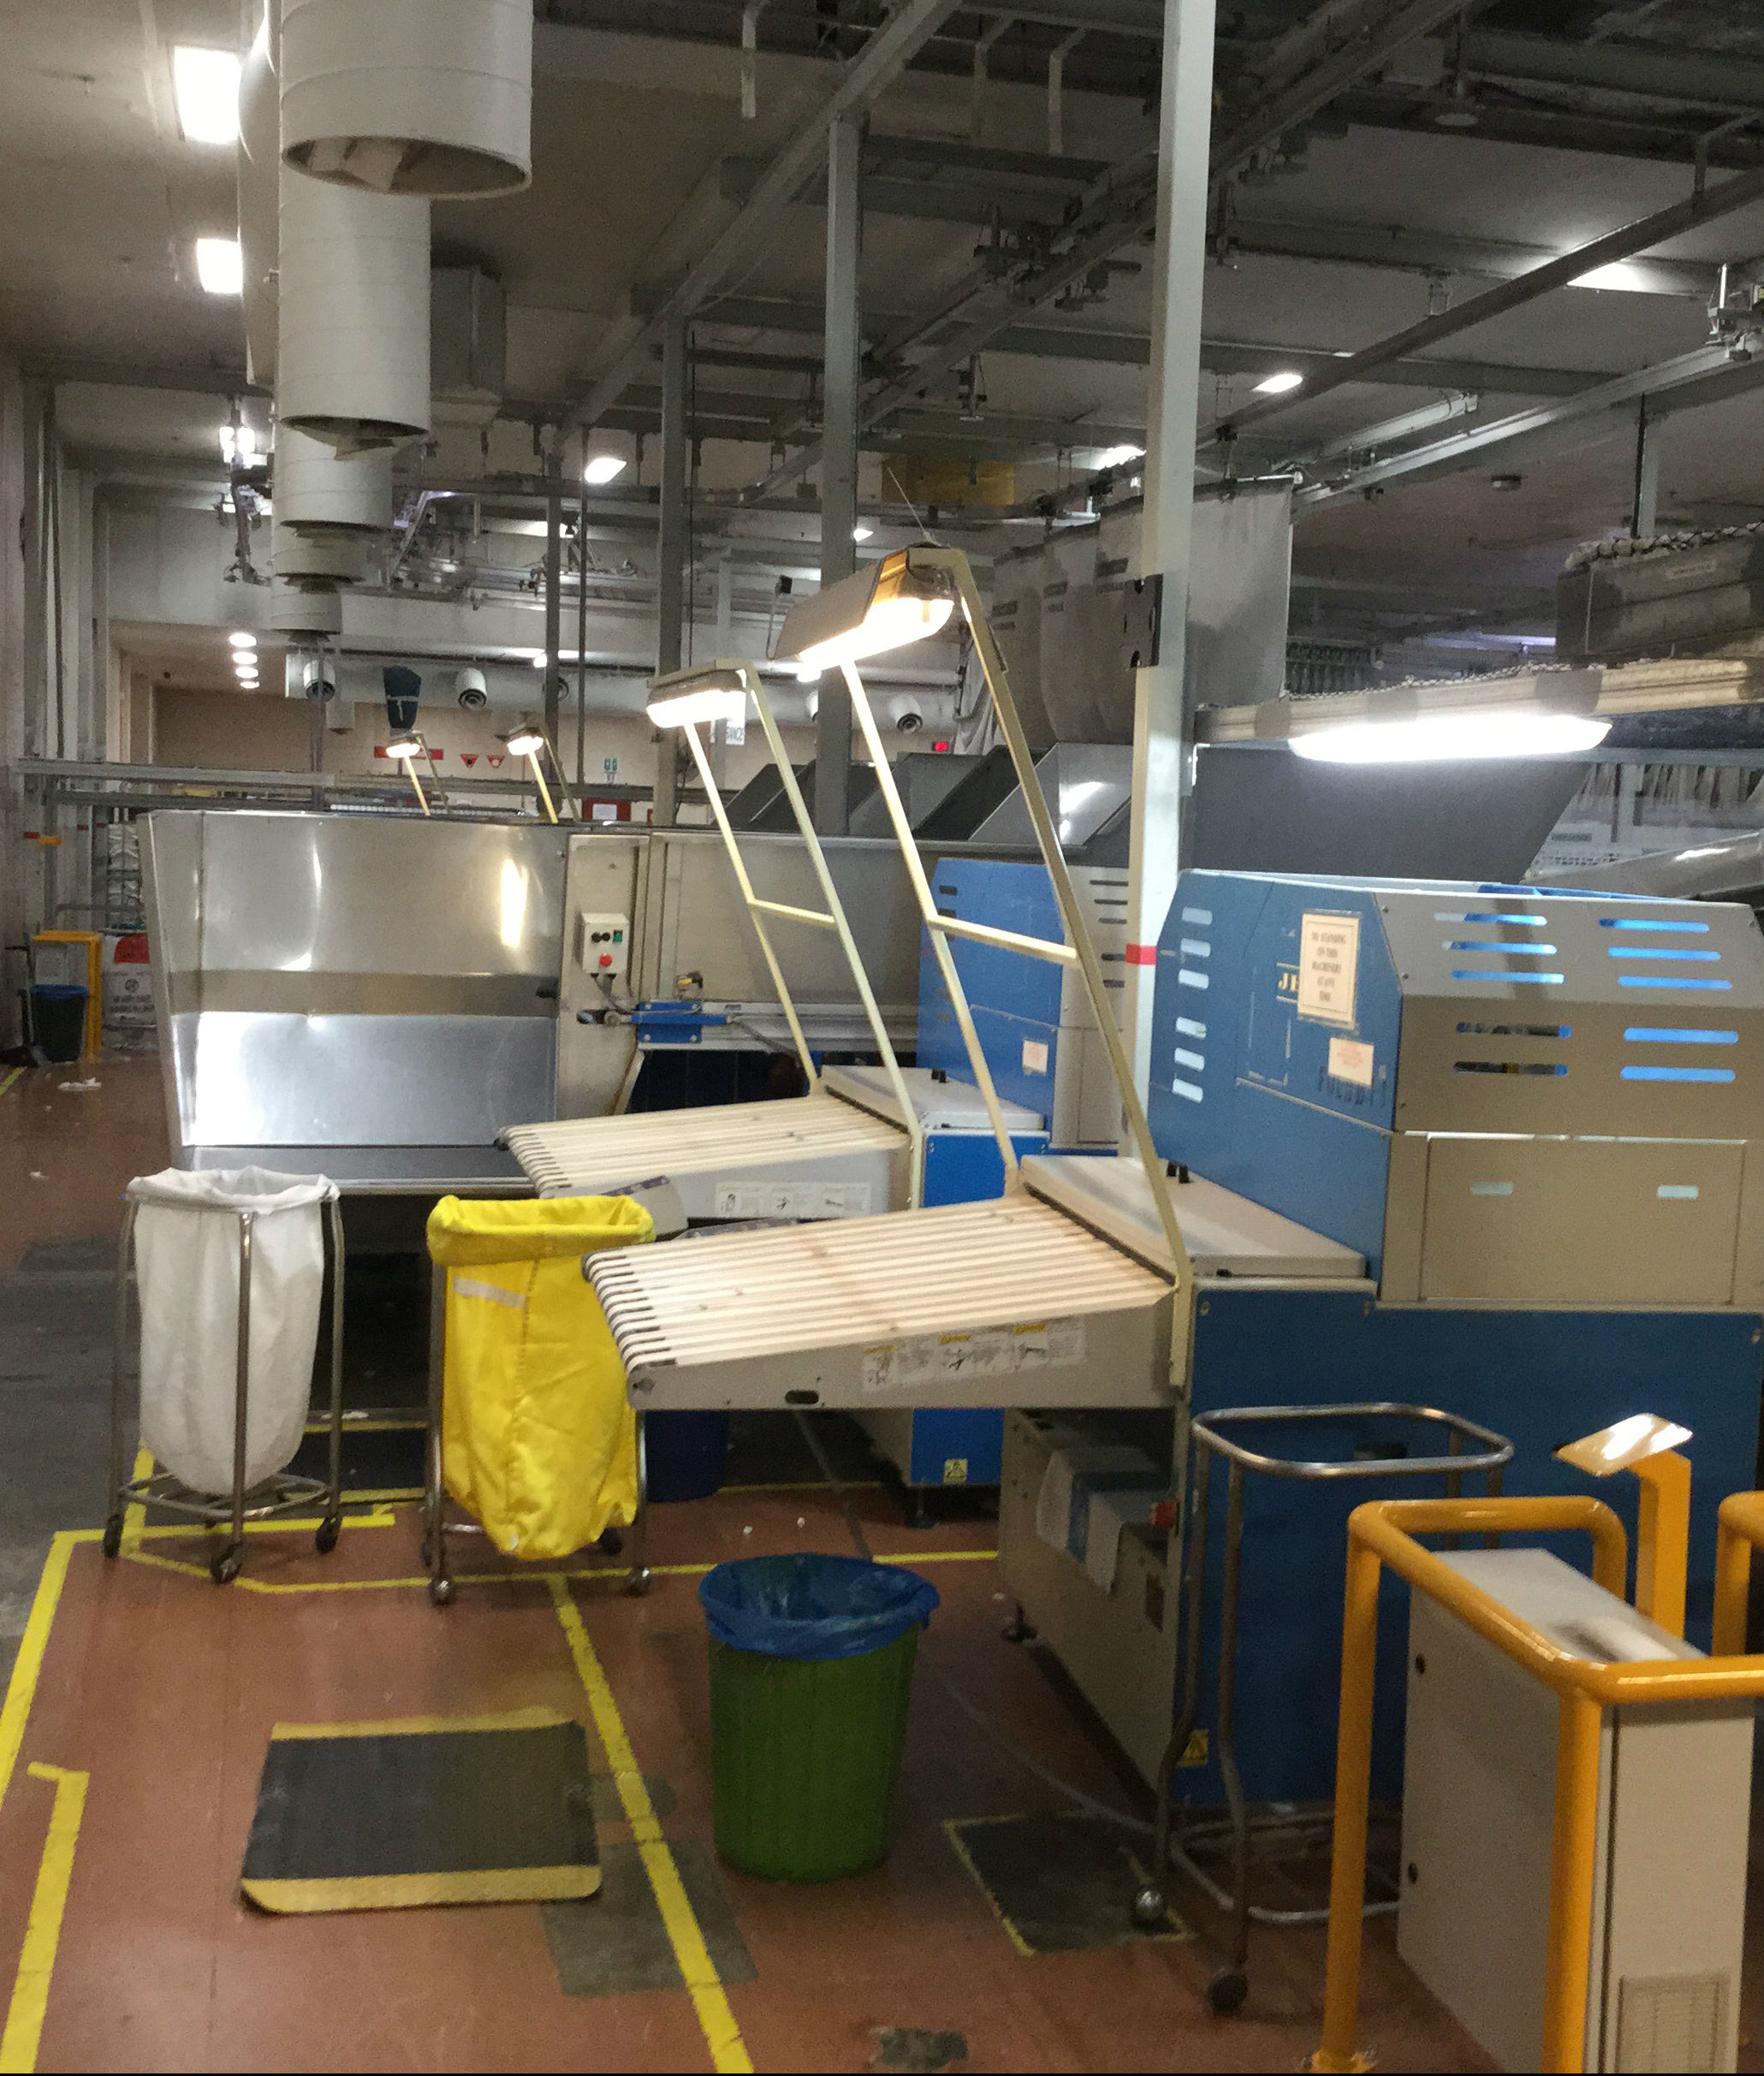 HealthShare NSW Government - Parramatta Linen facility LED lighting upgrade